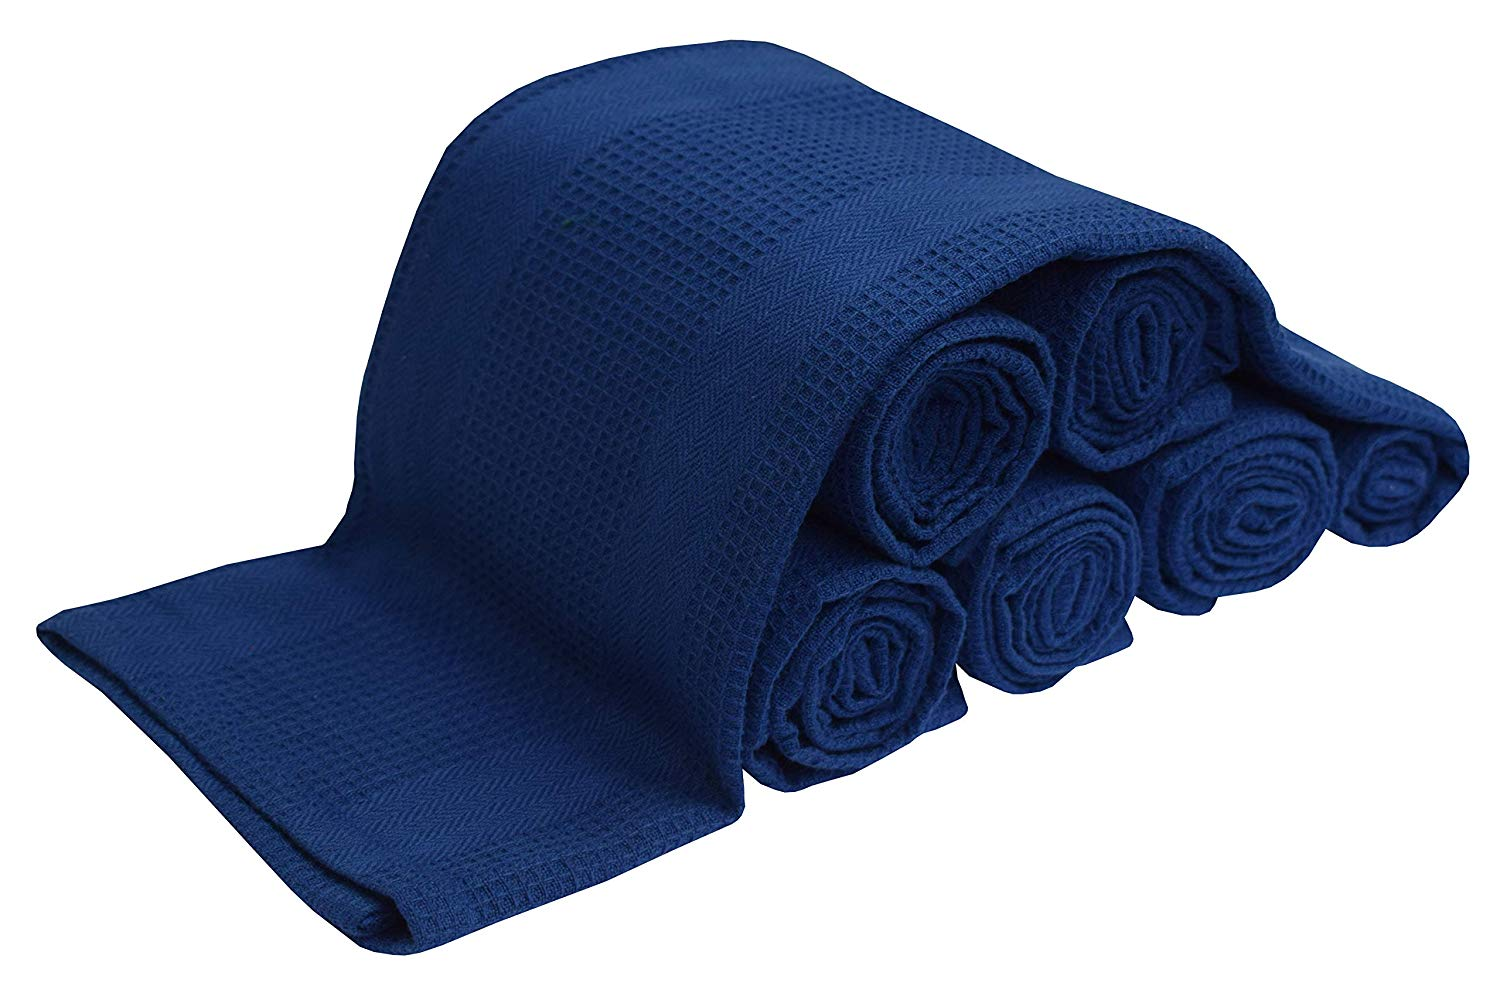 6 Pack Kitchen Towel - Navy - 16x28-100% Cotton - Waffle Weave - Absorbent - Quick Dry - Heavy Duty - Drying & Cleaning Kitchen Towels - Machine Washable